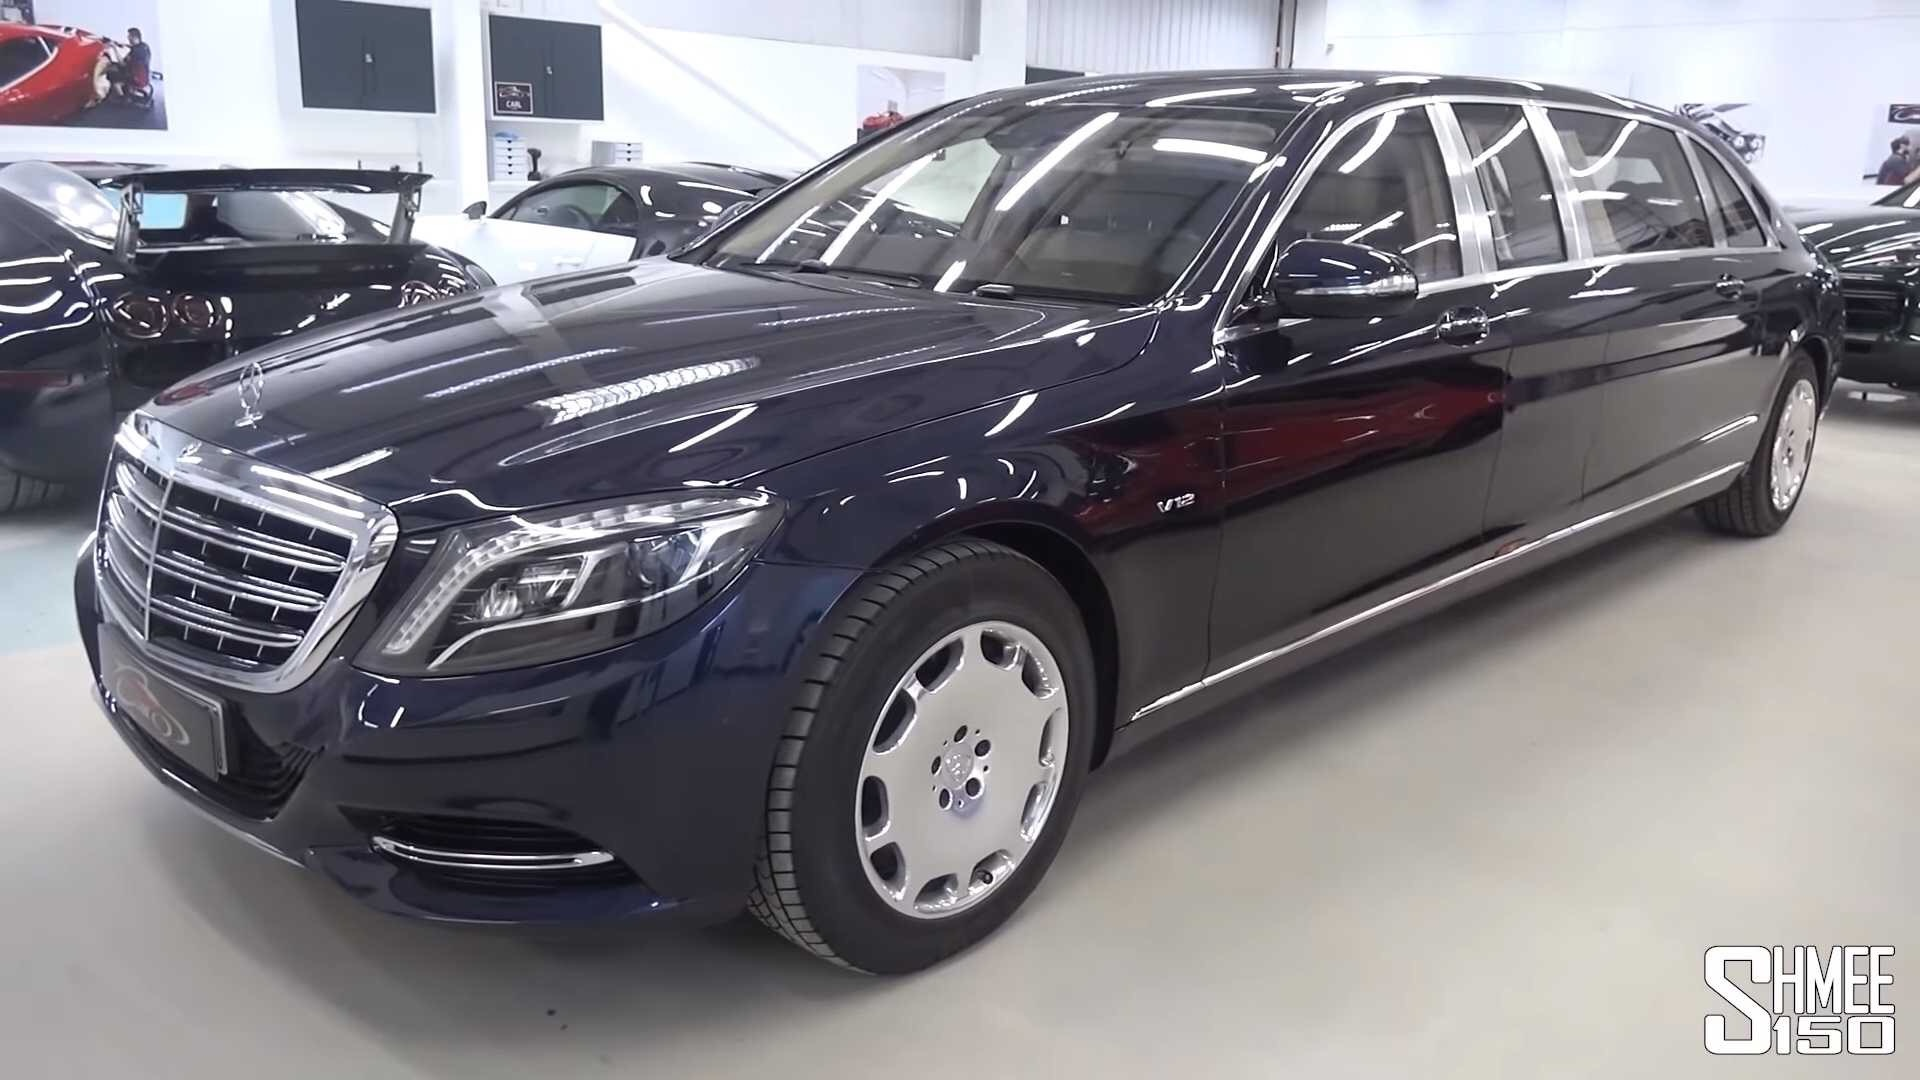 Have A Look Inside The Gigantic Mercedes-Maybach S600 Pullman